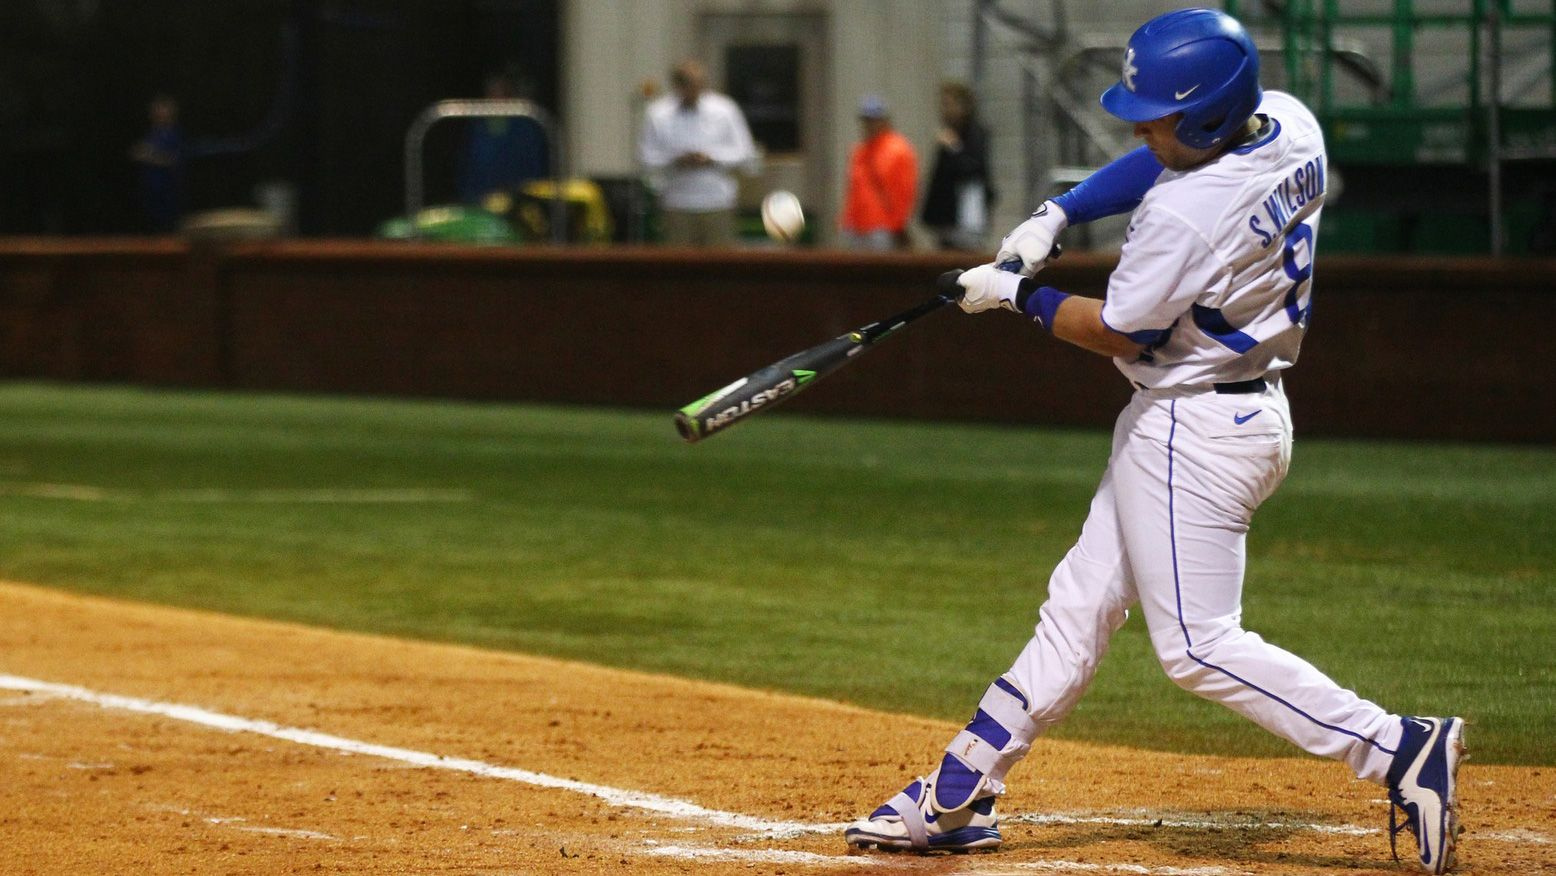 UK falls to Eastern Kentucky